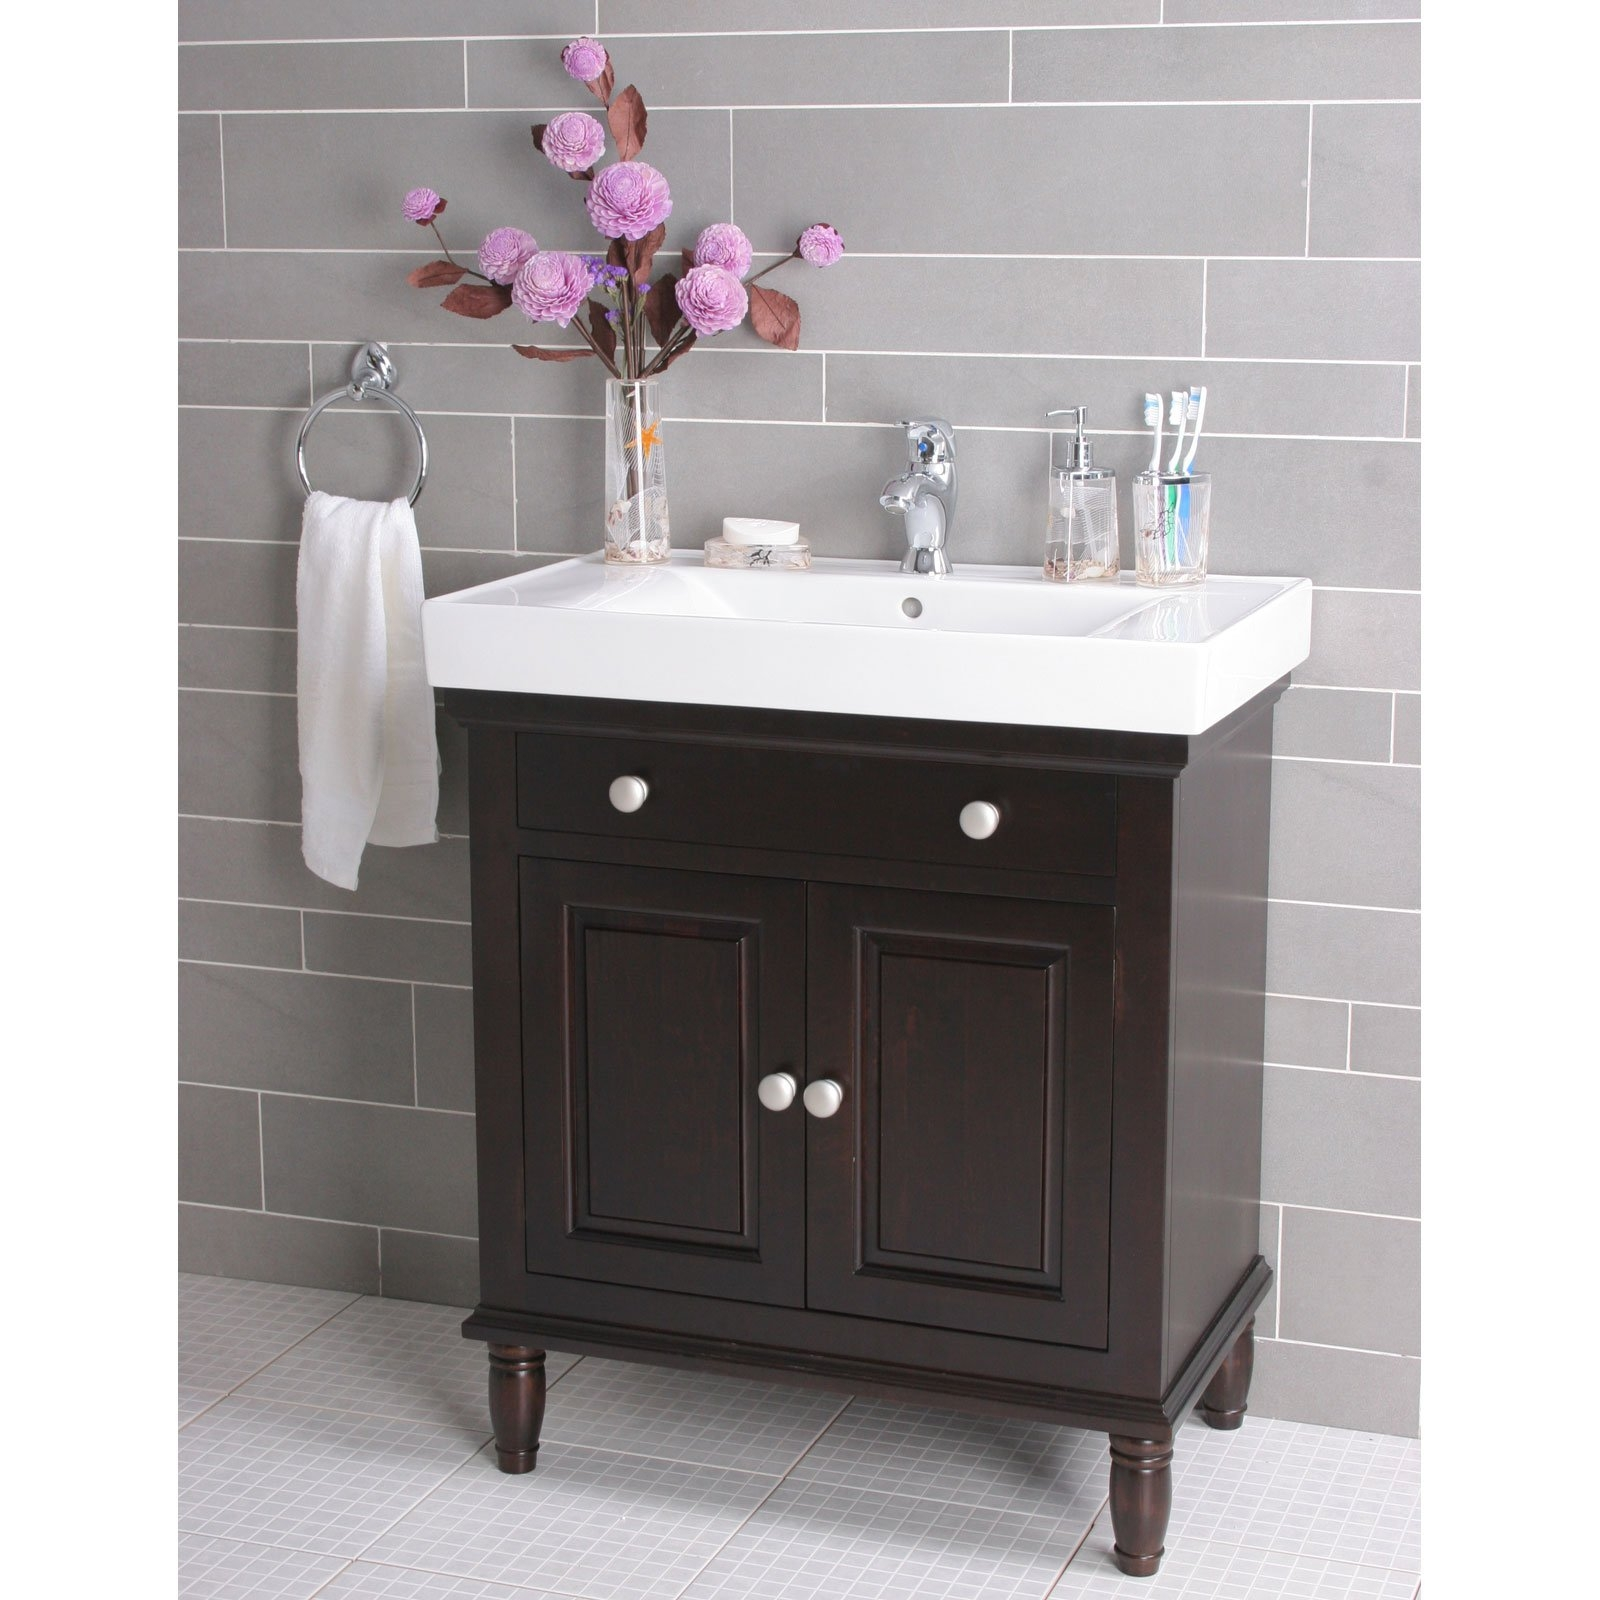 Bathroom Sink And Cabinets Lowes